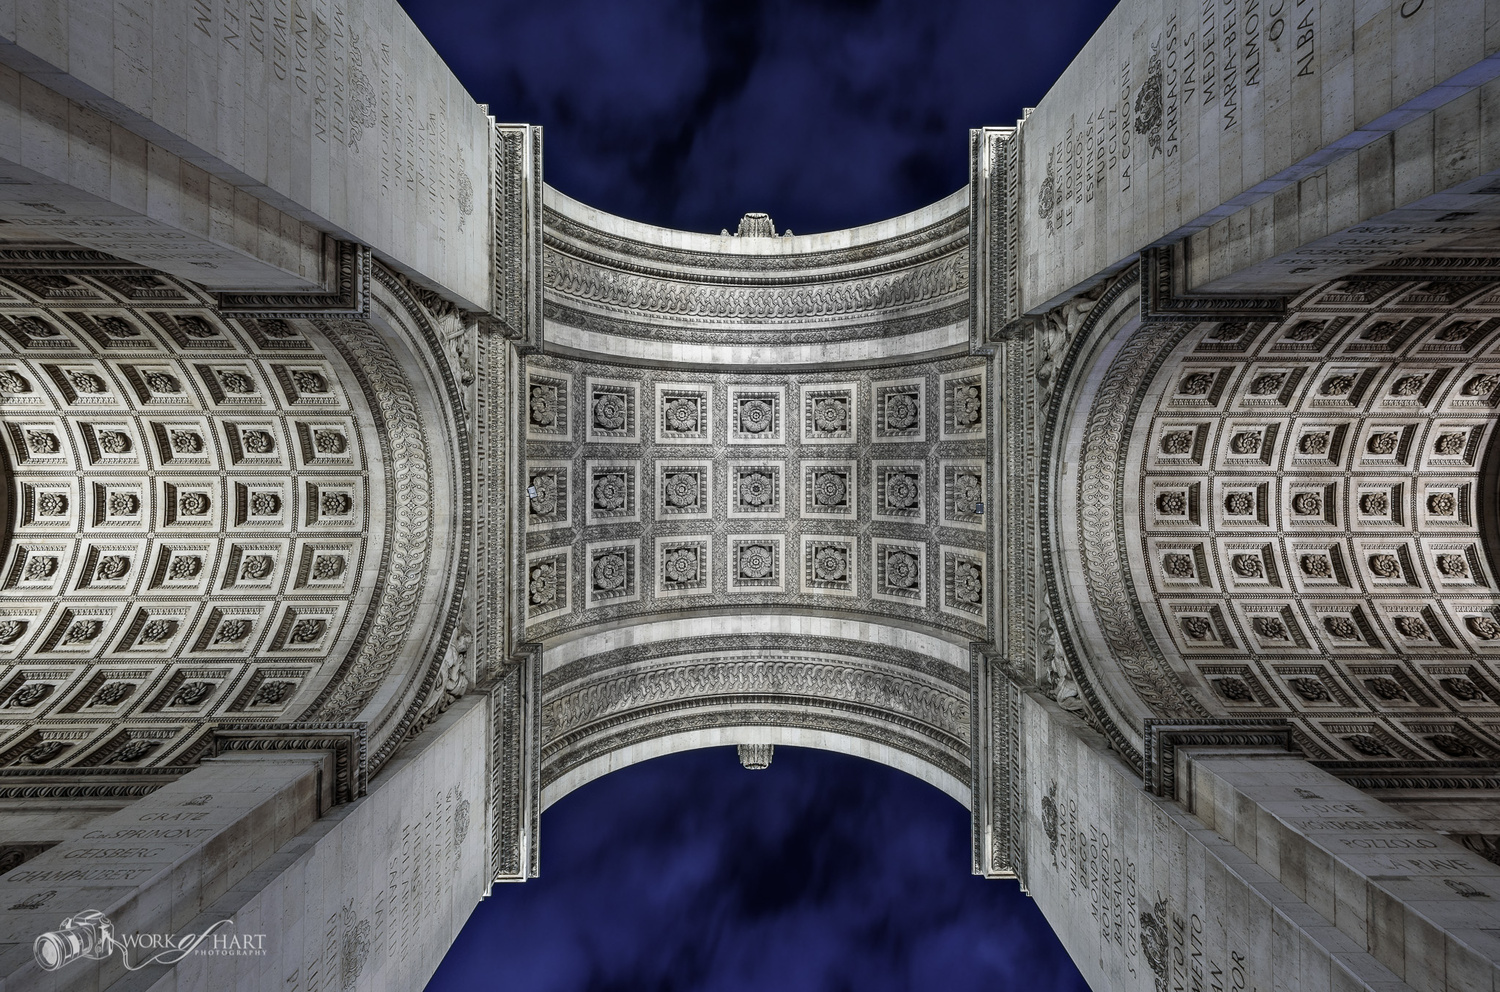 Arc de Triomphe by Jason Hart